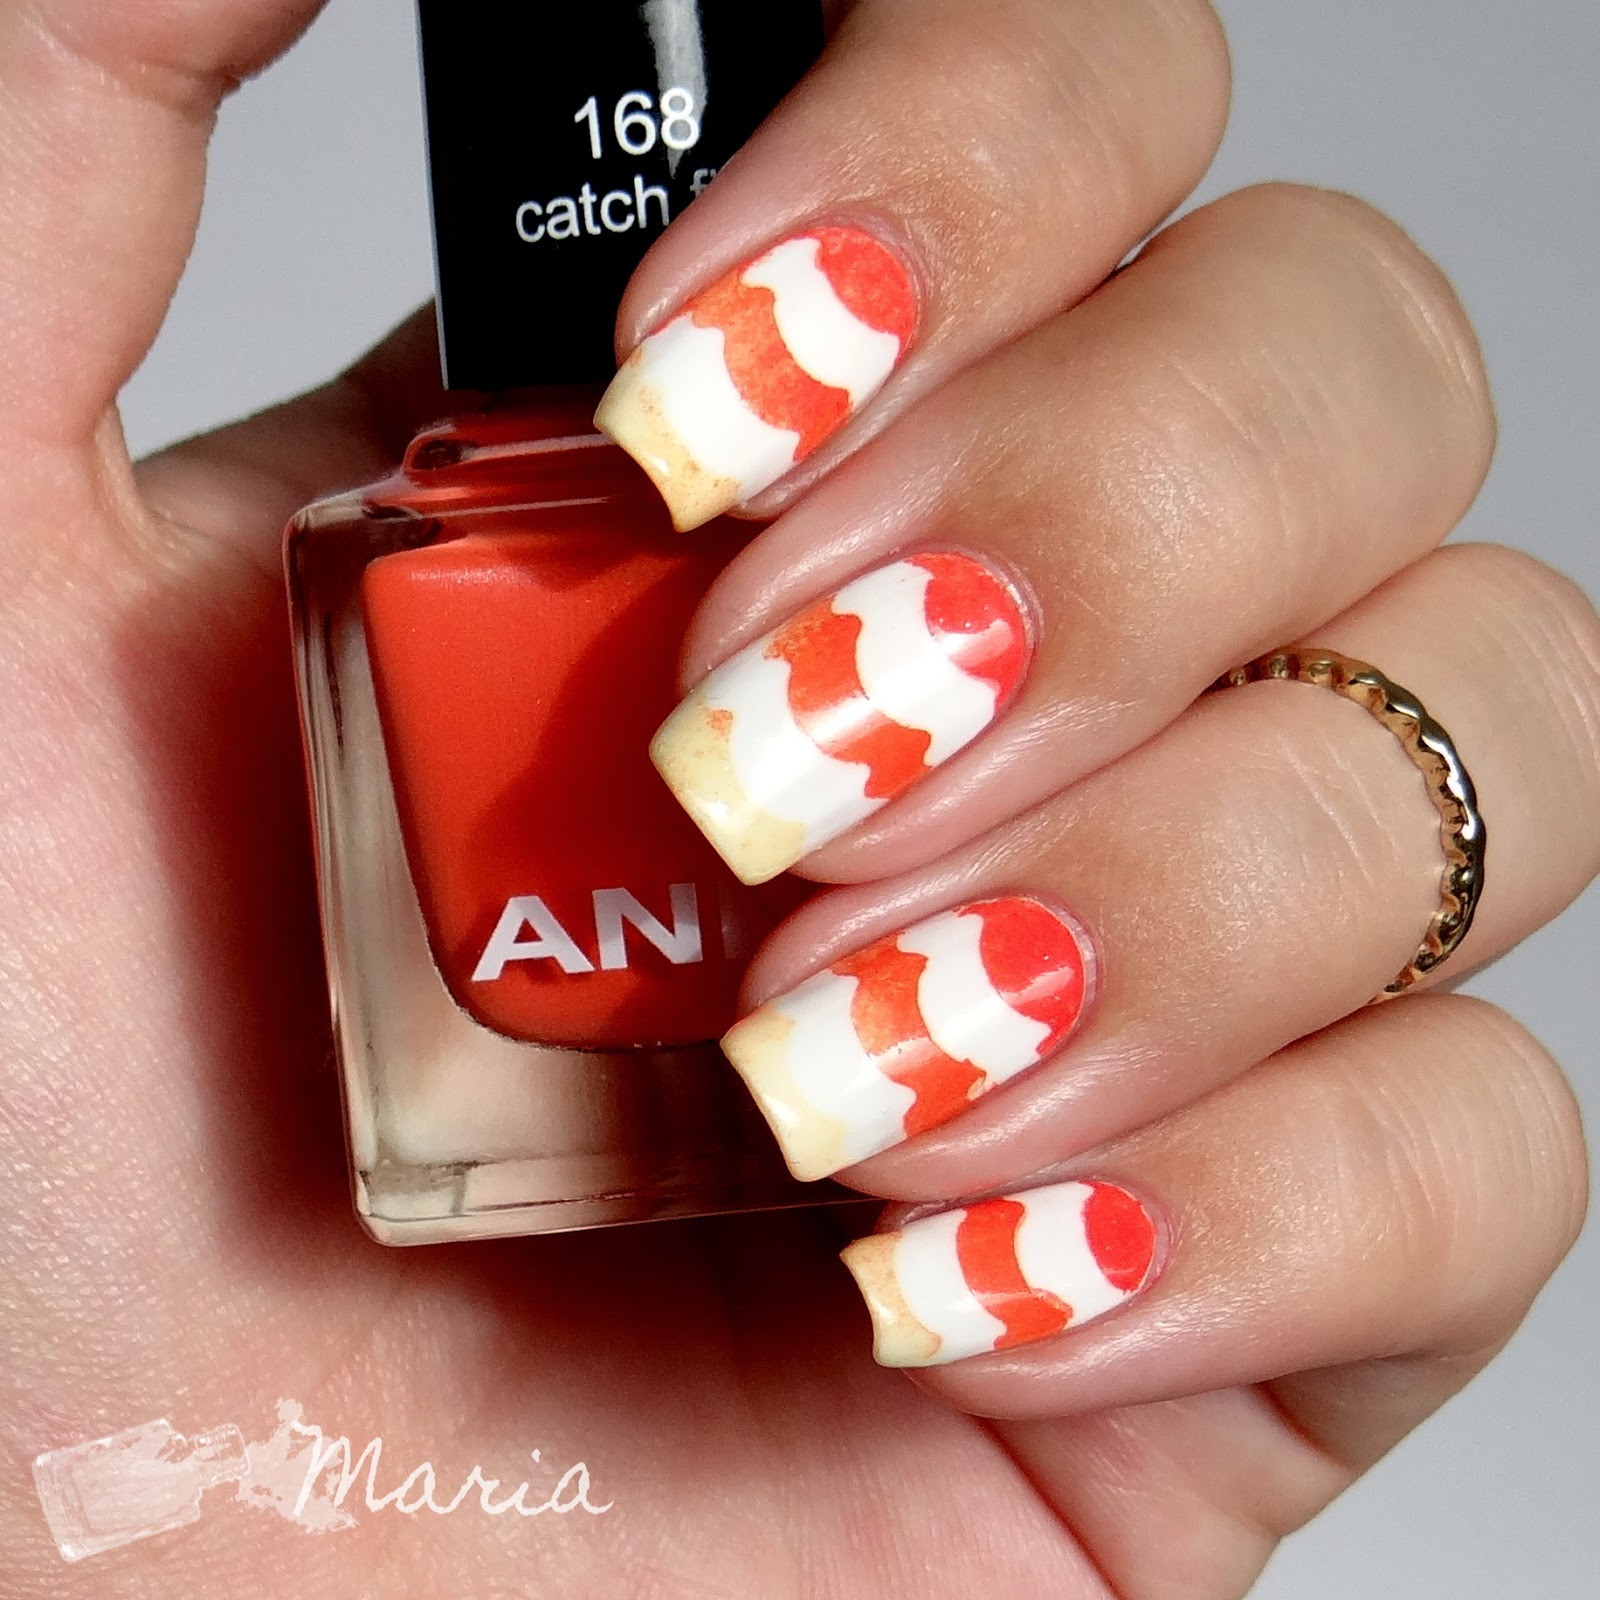 http://rainpow-nails.blogspot.de/2014/08/tape-month-sunset-gradient.html